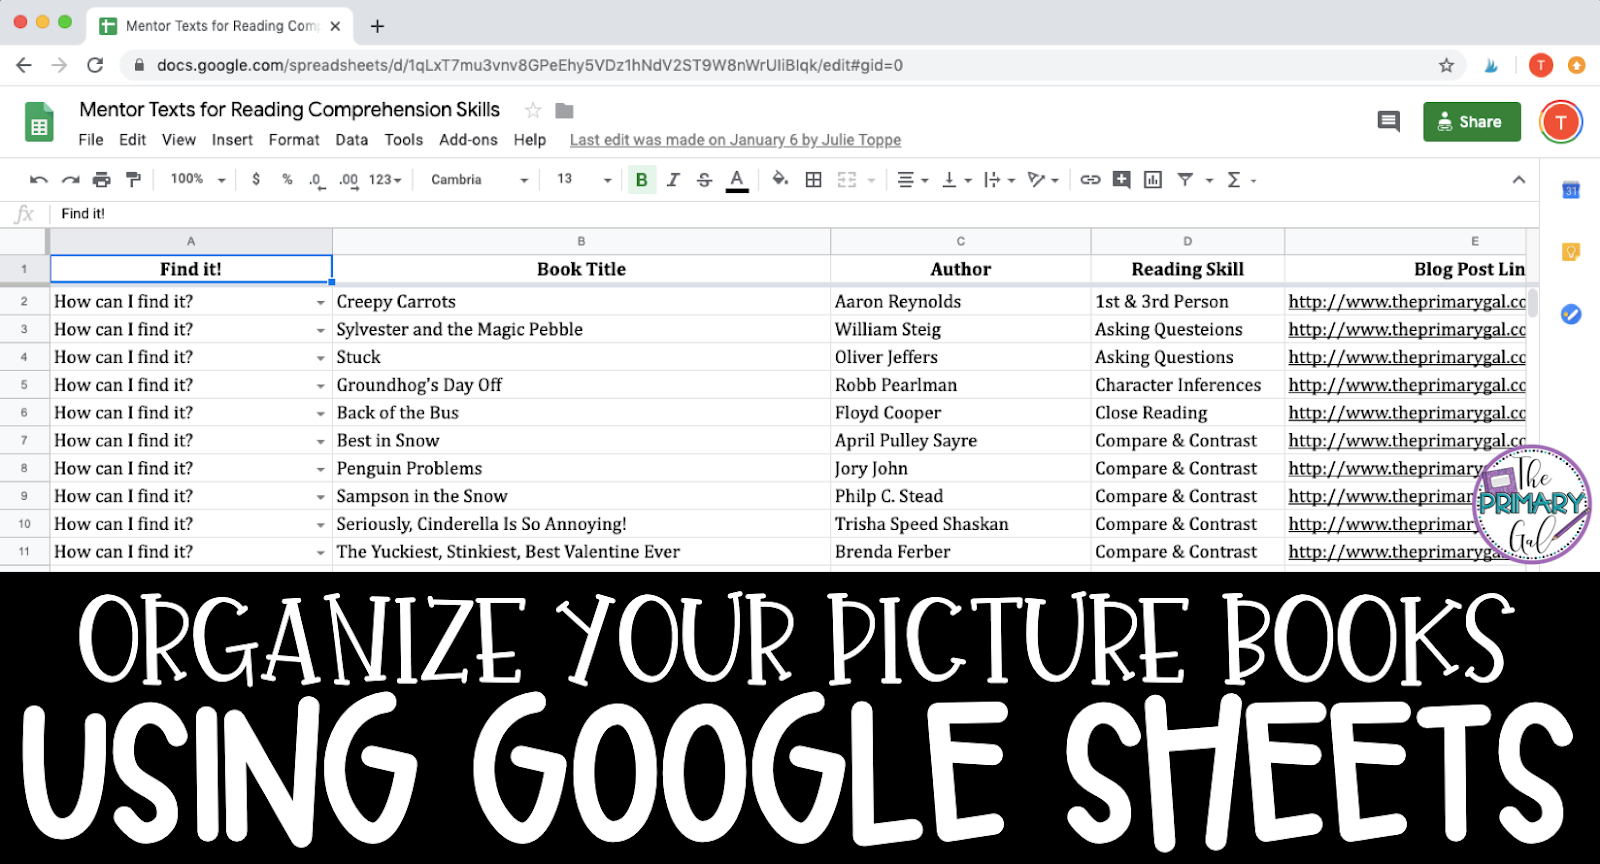 How to Organize Your Picture Books with a Google Sheet